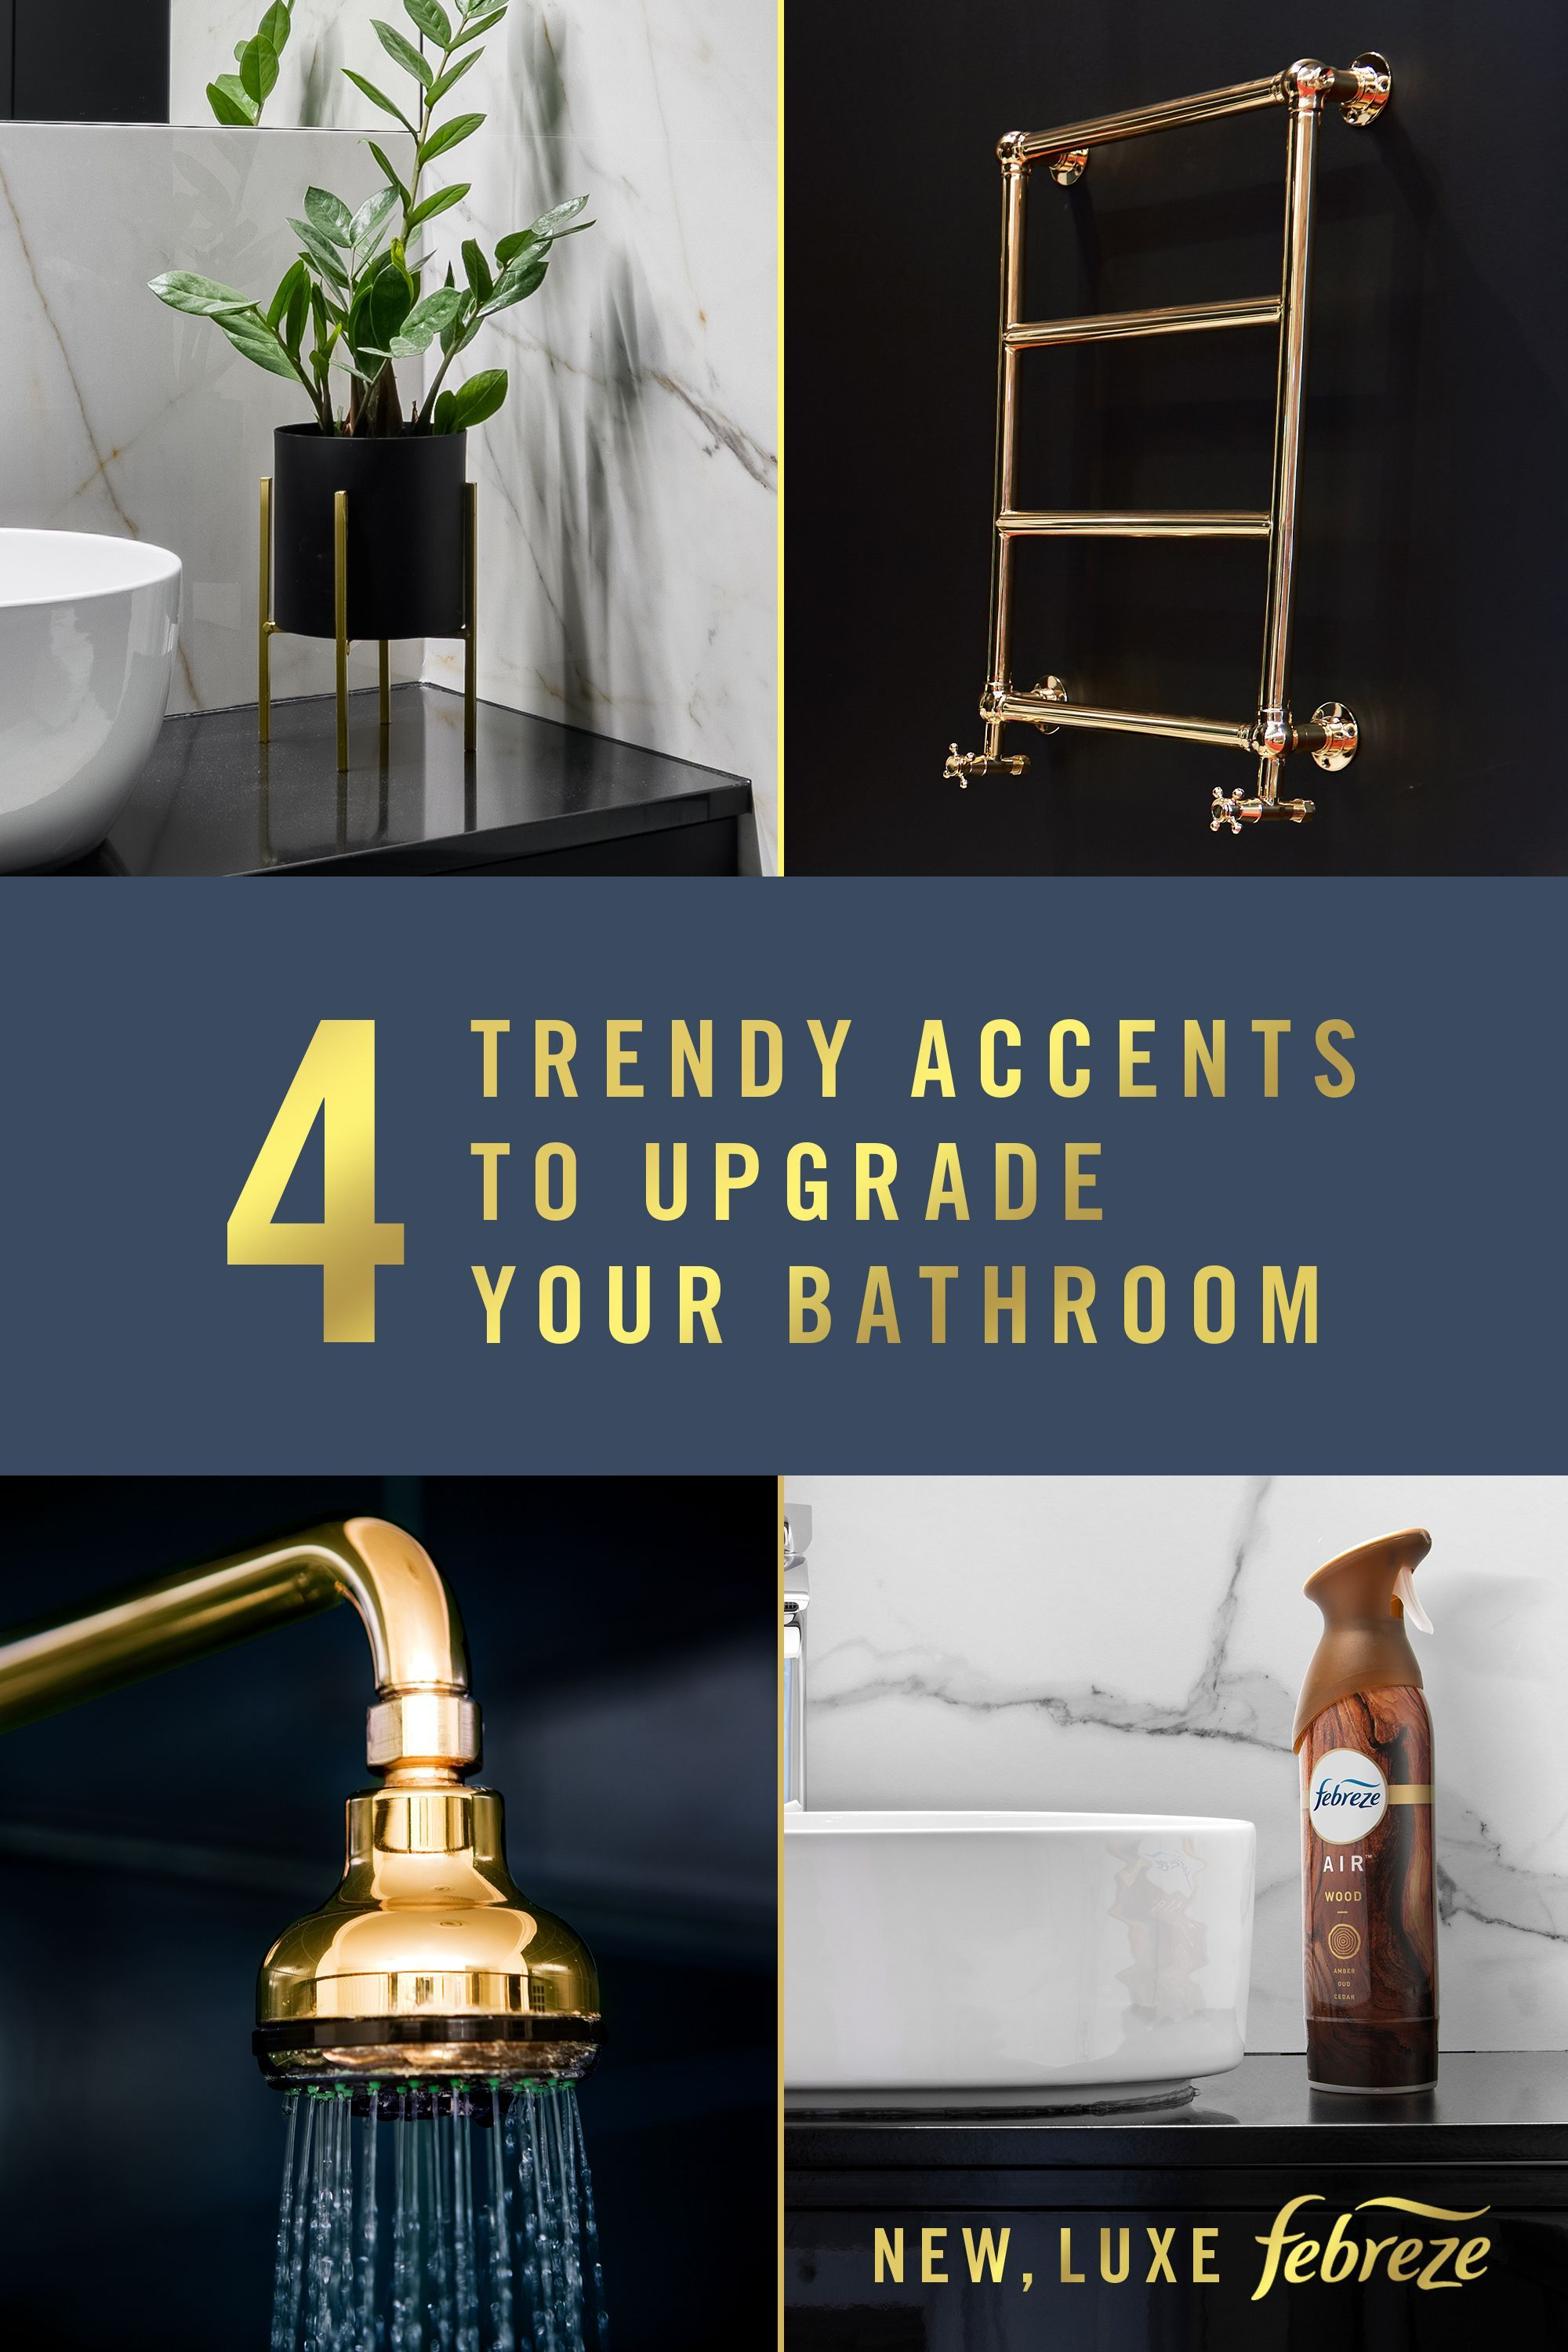 What 39 S On Trend In Bathroom Decor Brass Accents Rich Tones And A Luxurious Scent To Tie It All Together So G In 2020 Bathroom Renovations Cheap Home Decor Home